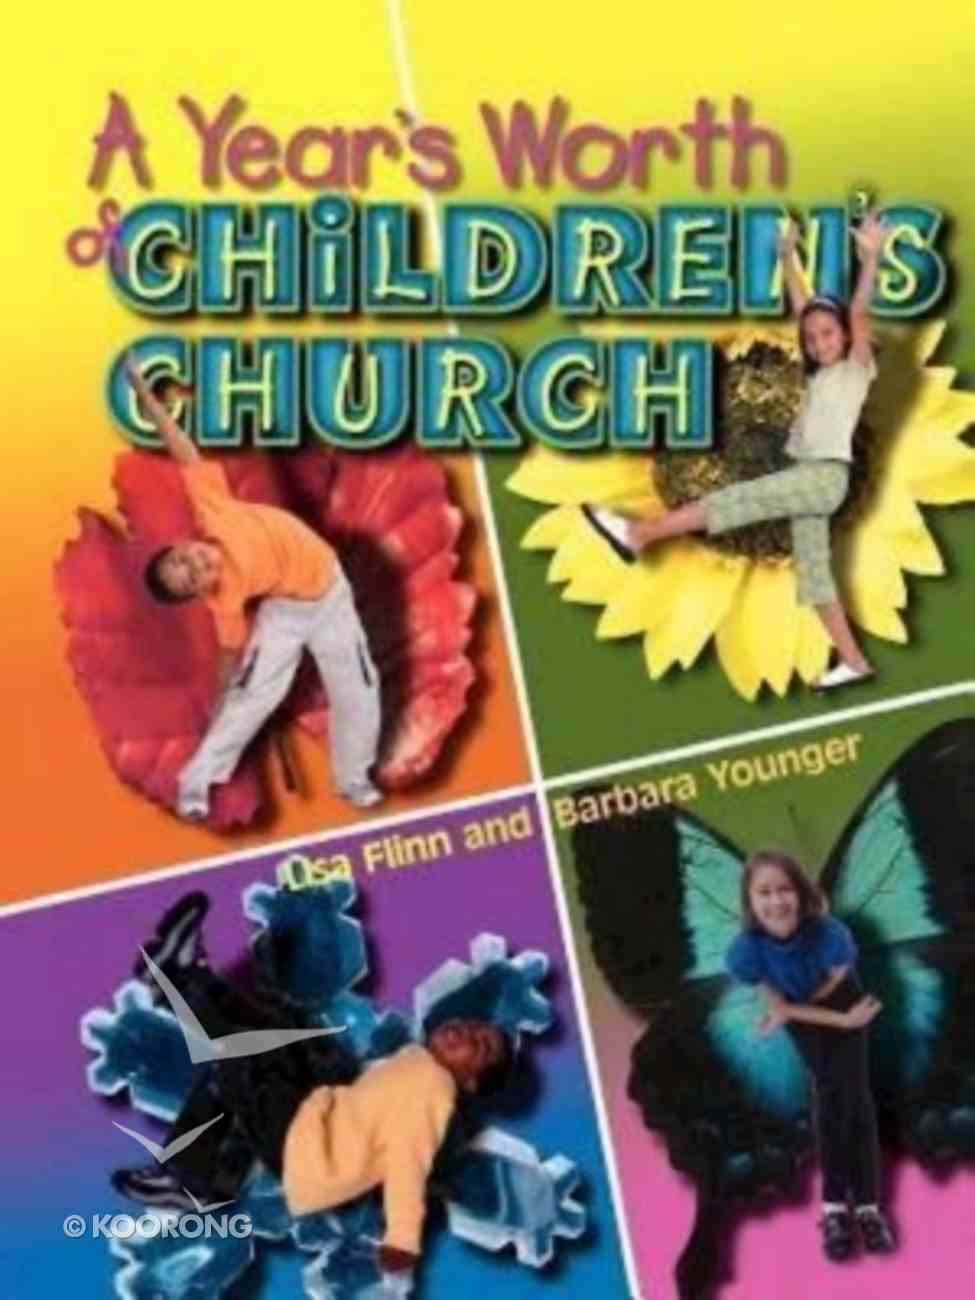 A Year's Worth of Children's Church Spiral